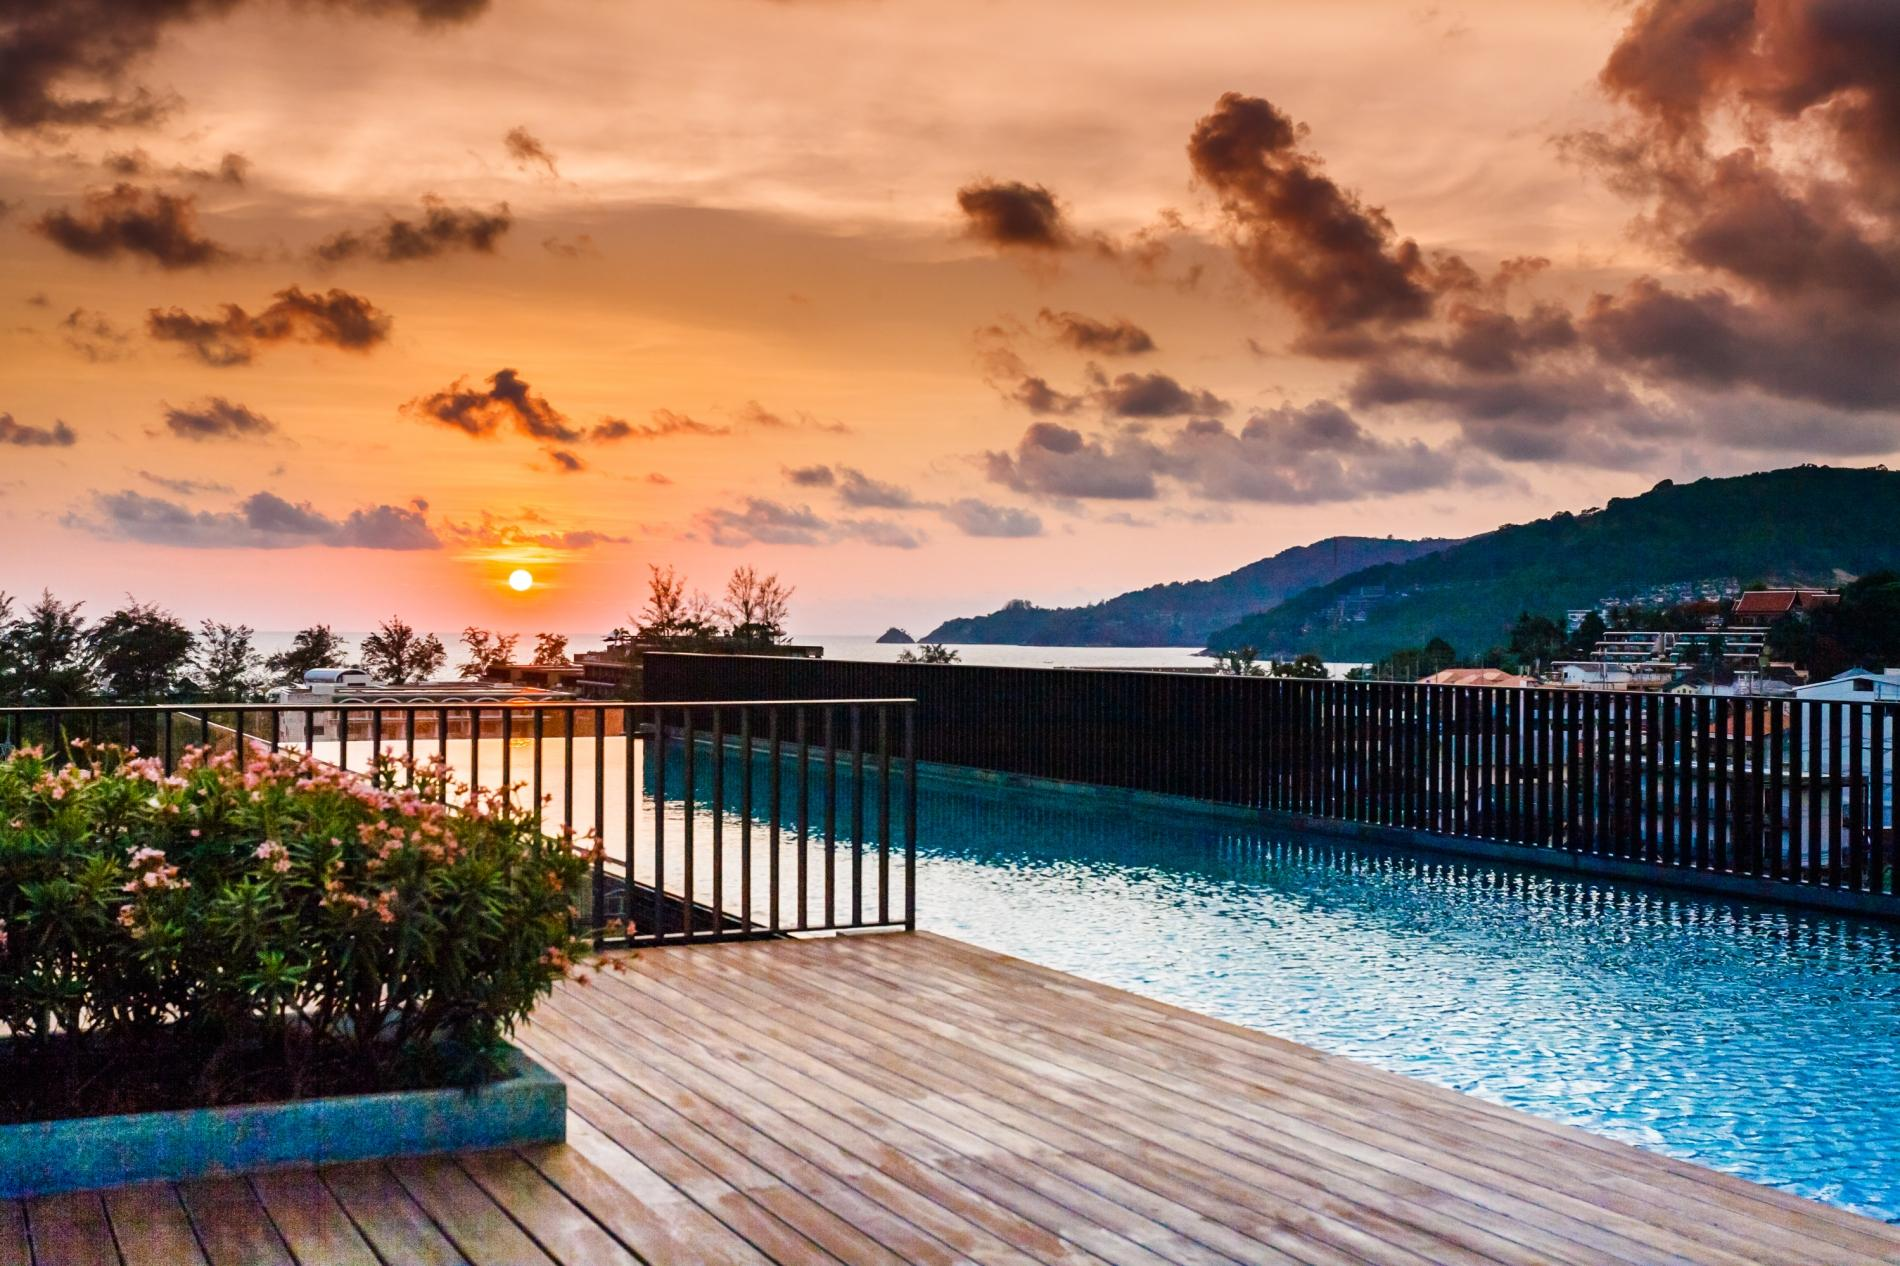 Apartment D9 - The Deck Patong  rooftop pool  gym and great location  photo 16860653